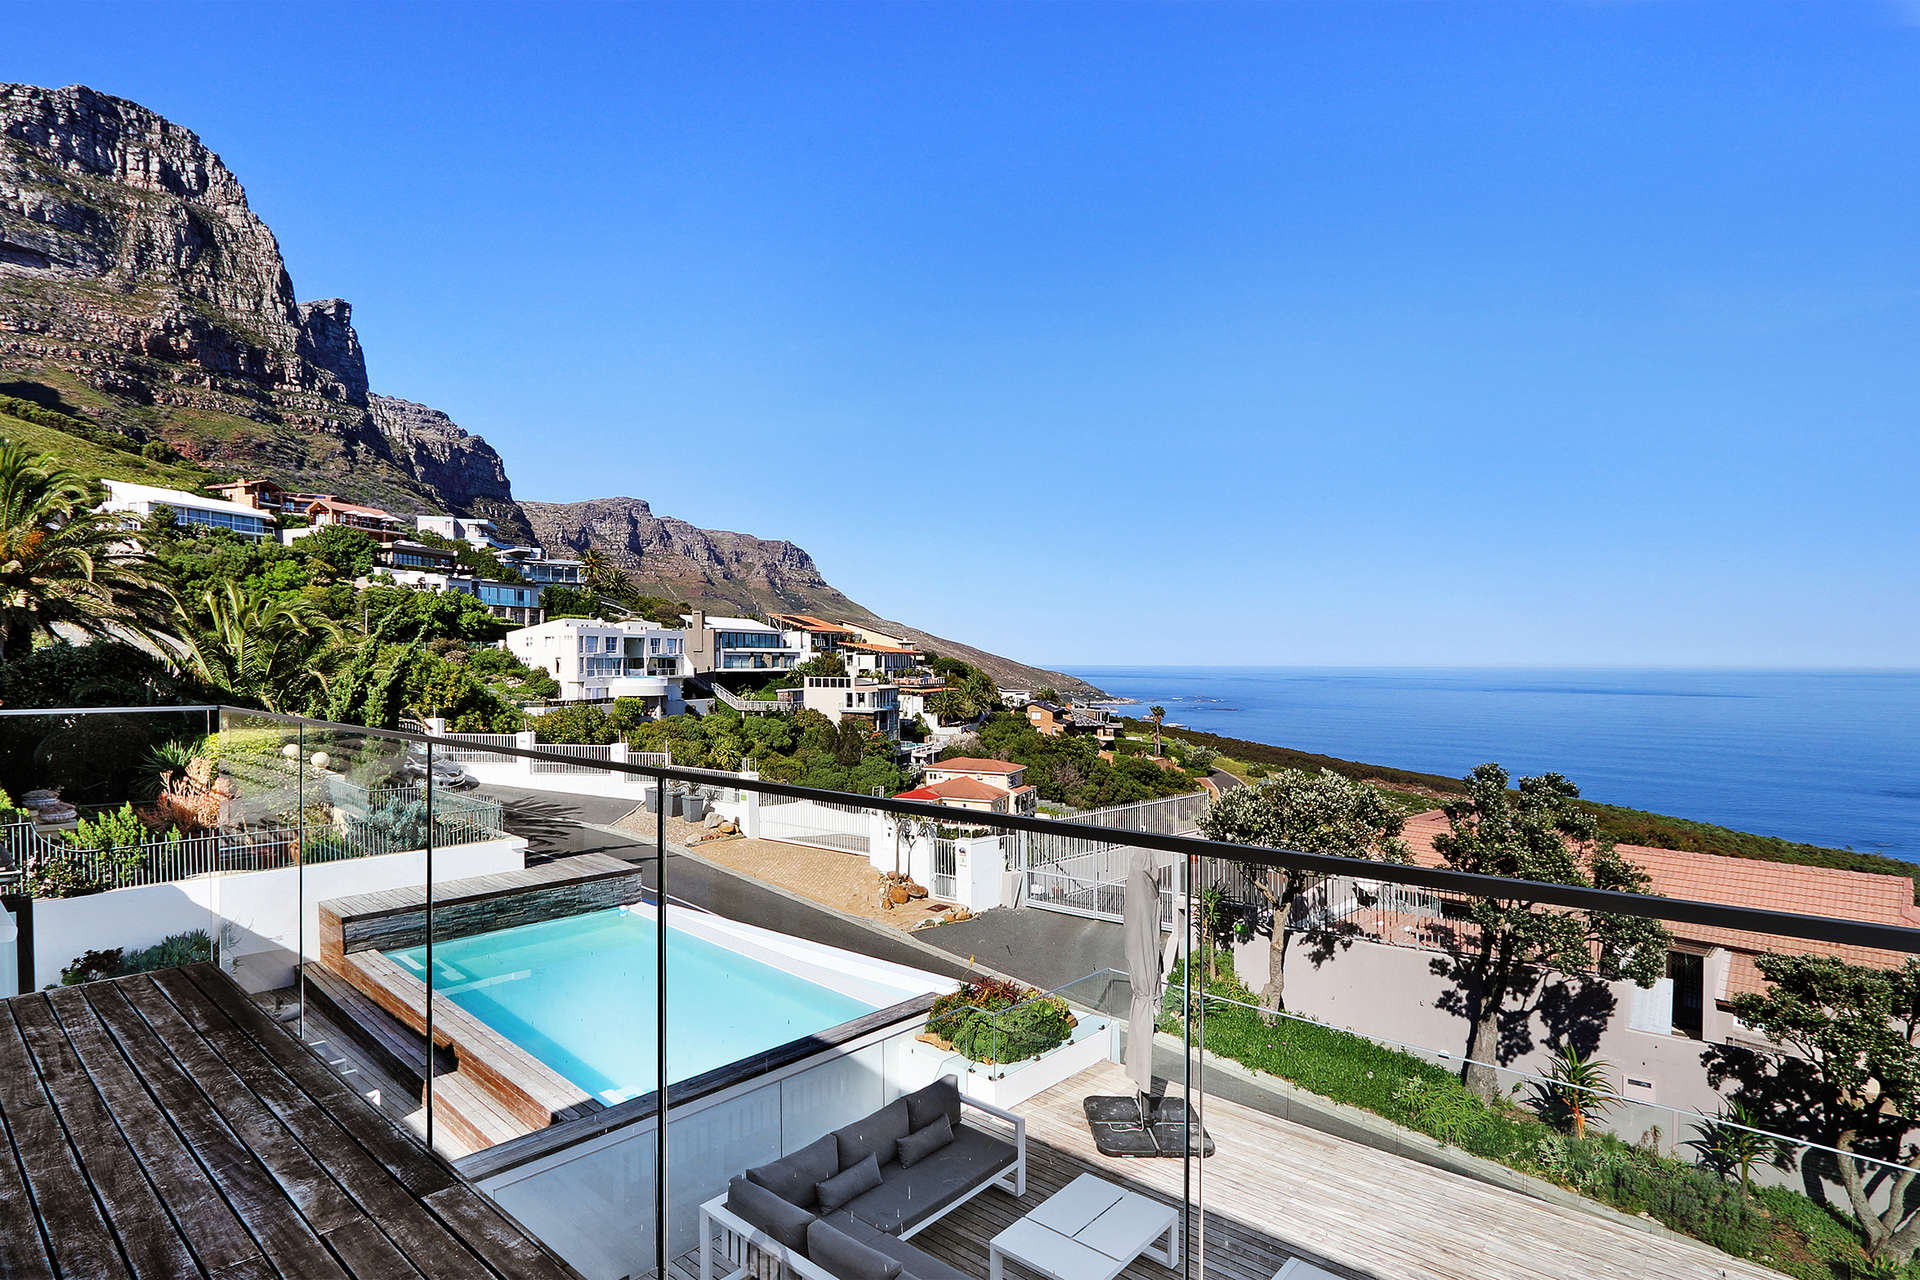 Luxury villa rentals africa - South africa - Capetown - Camps bay ct - Ty Gwyn - Image 1/29